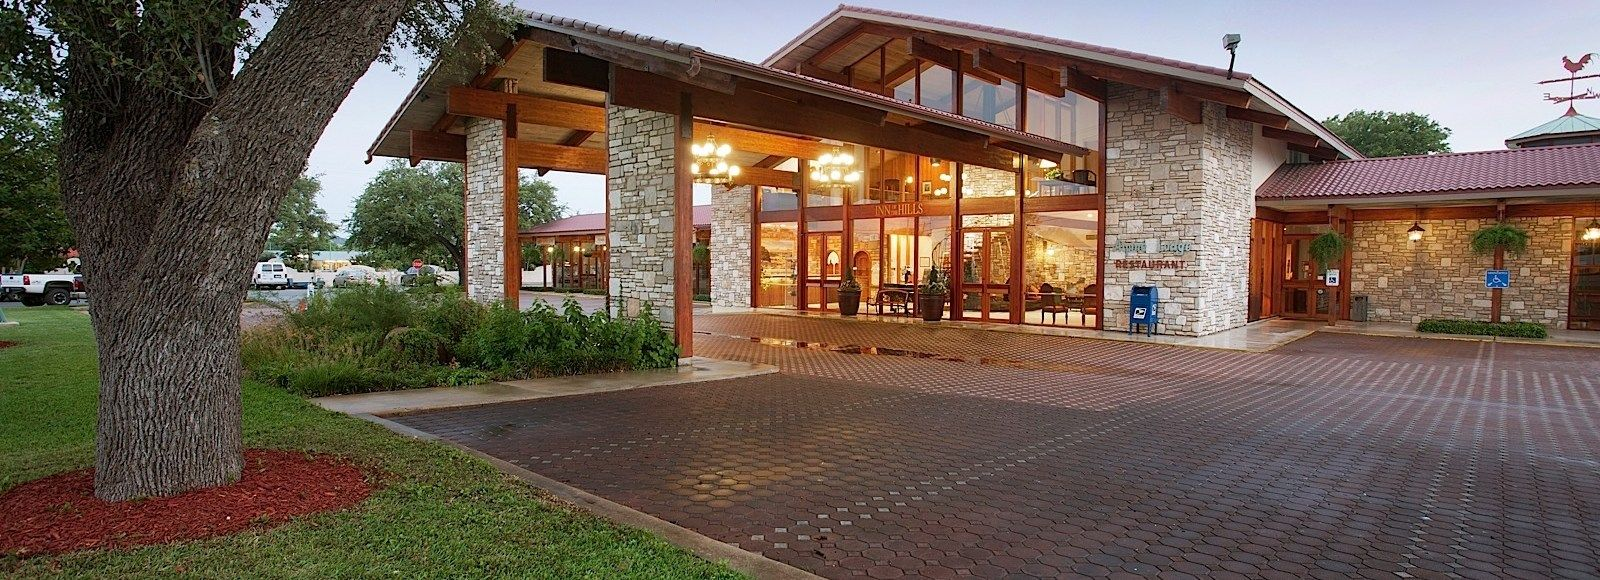 Hotels In Kerrville Inn Of The Hills Texas